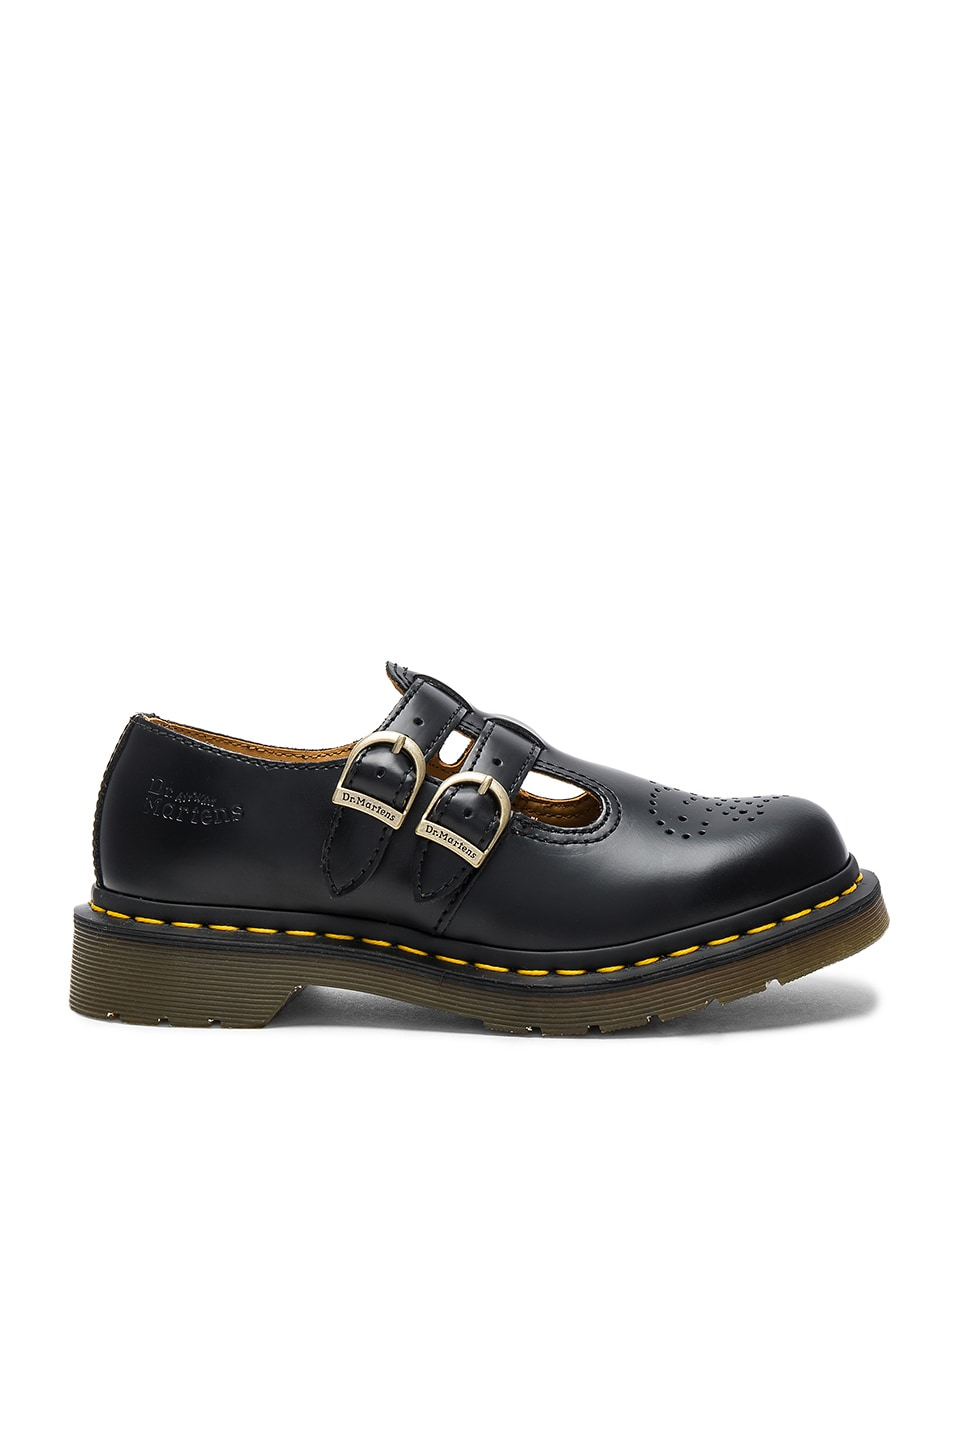 Dr. Martens Mary Jane Flats in Black